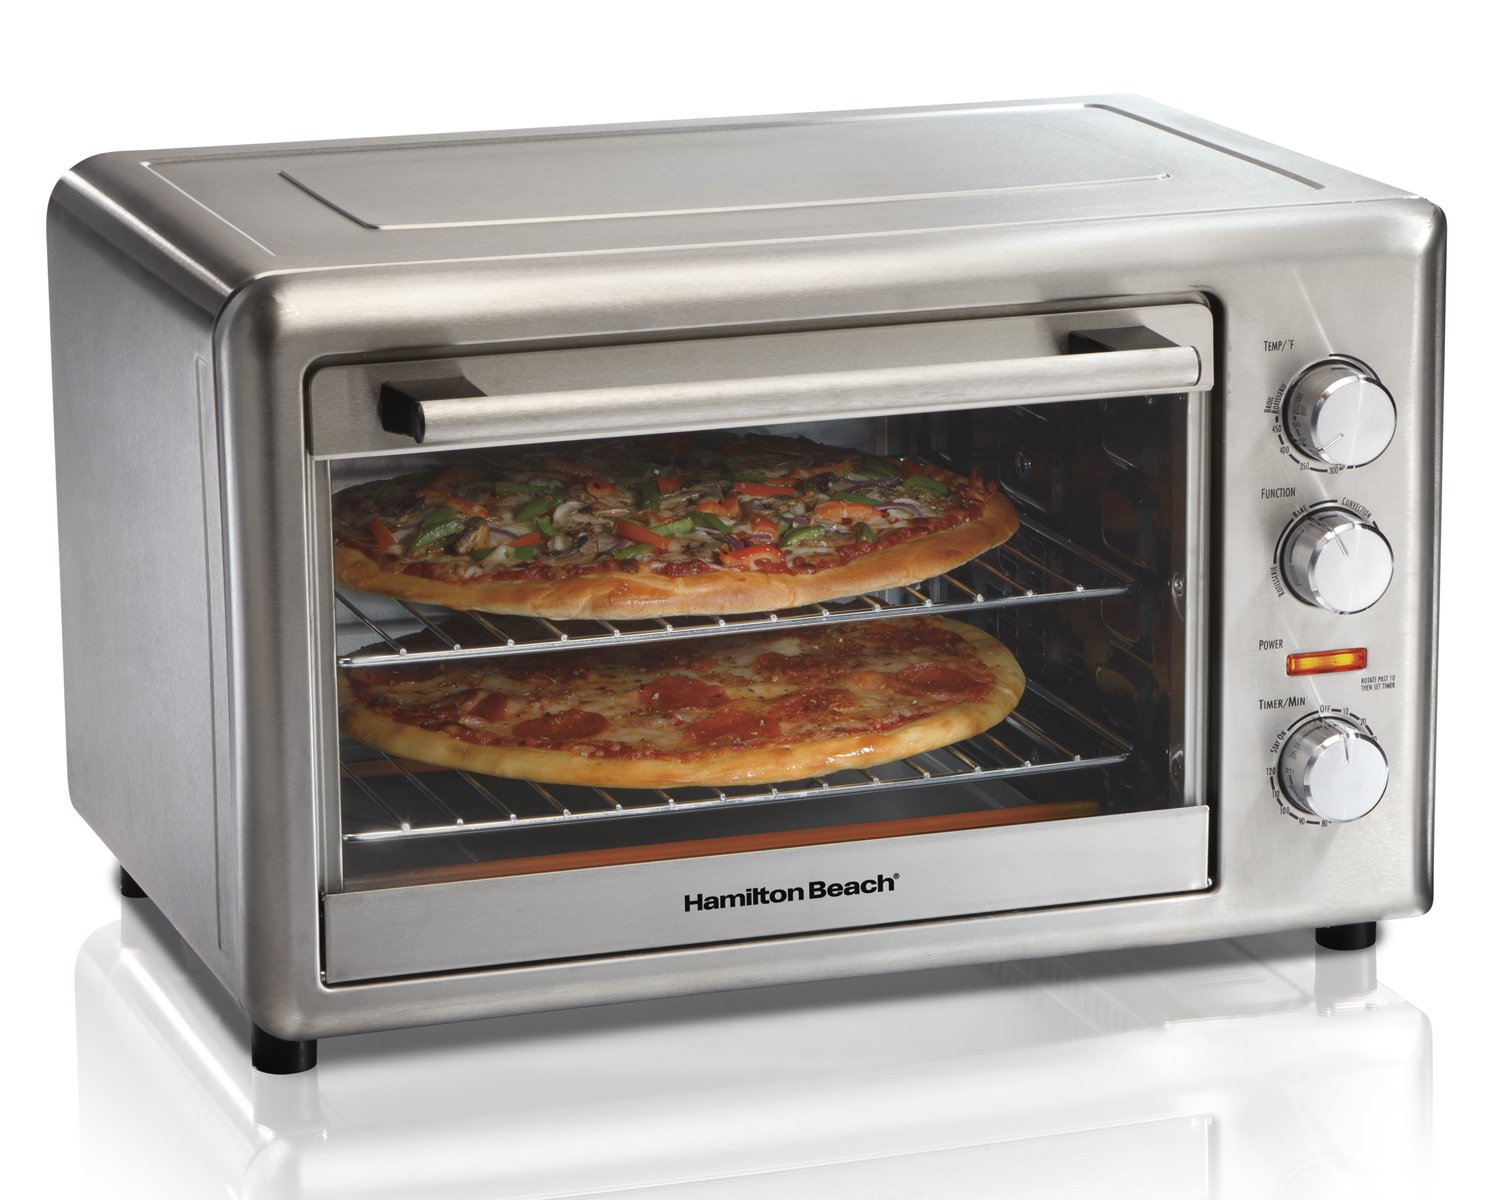 Hamilton Beach Countertop Oven with Convection and Rotisserie, Standard Packaging